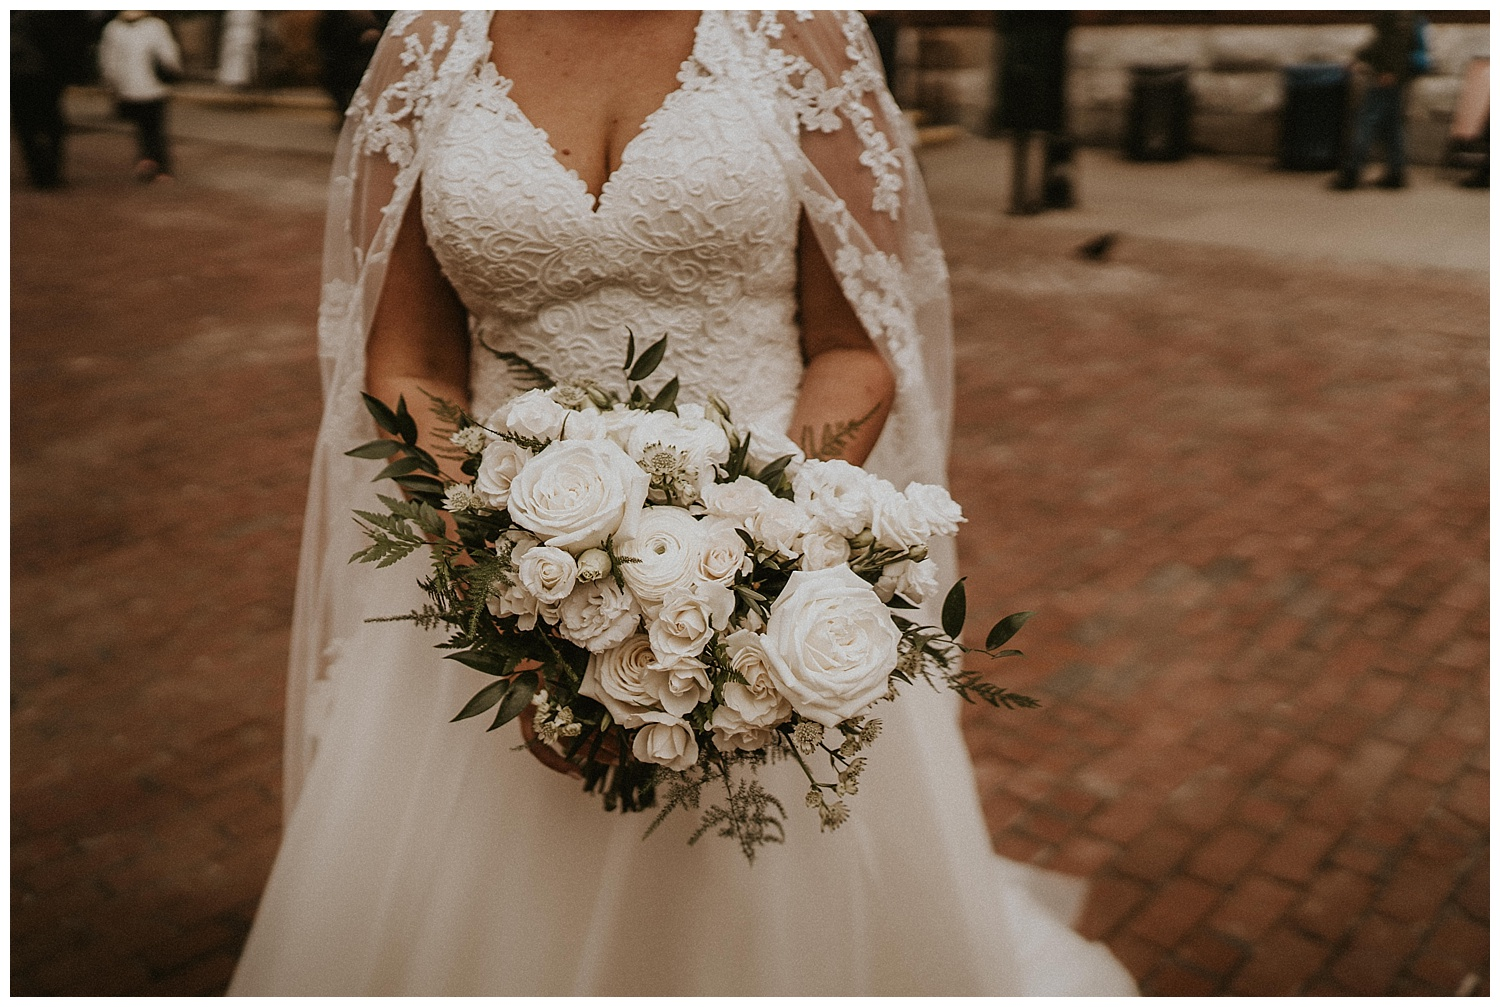 Katie Marie Photography | Archeo Wedding Arta Gallery Wedding | Distillery District Wedding | Toronto Wedding Photographer | Hamilton Toronto Ontario Wedding Photographer |_0021.jpg